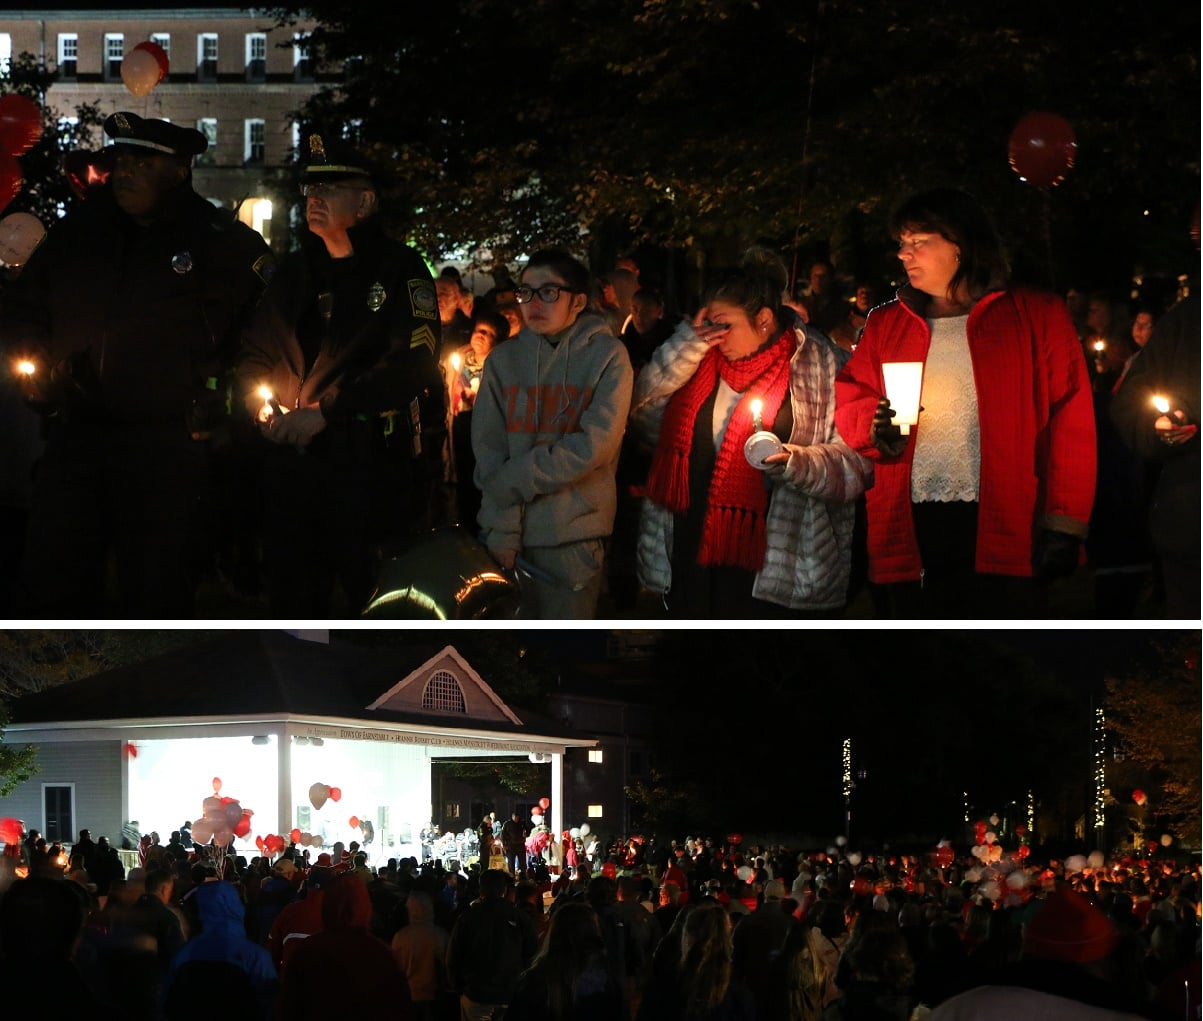 Vigil In Honor Of 5 Young Men Tragically Killed This Past